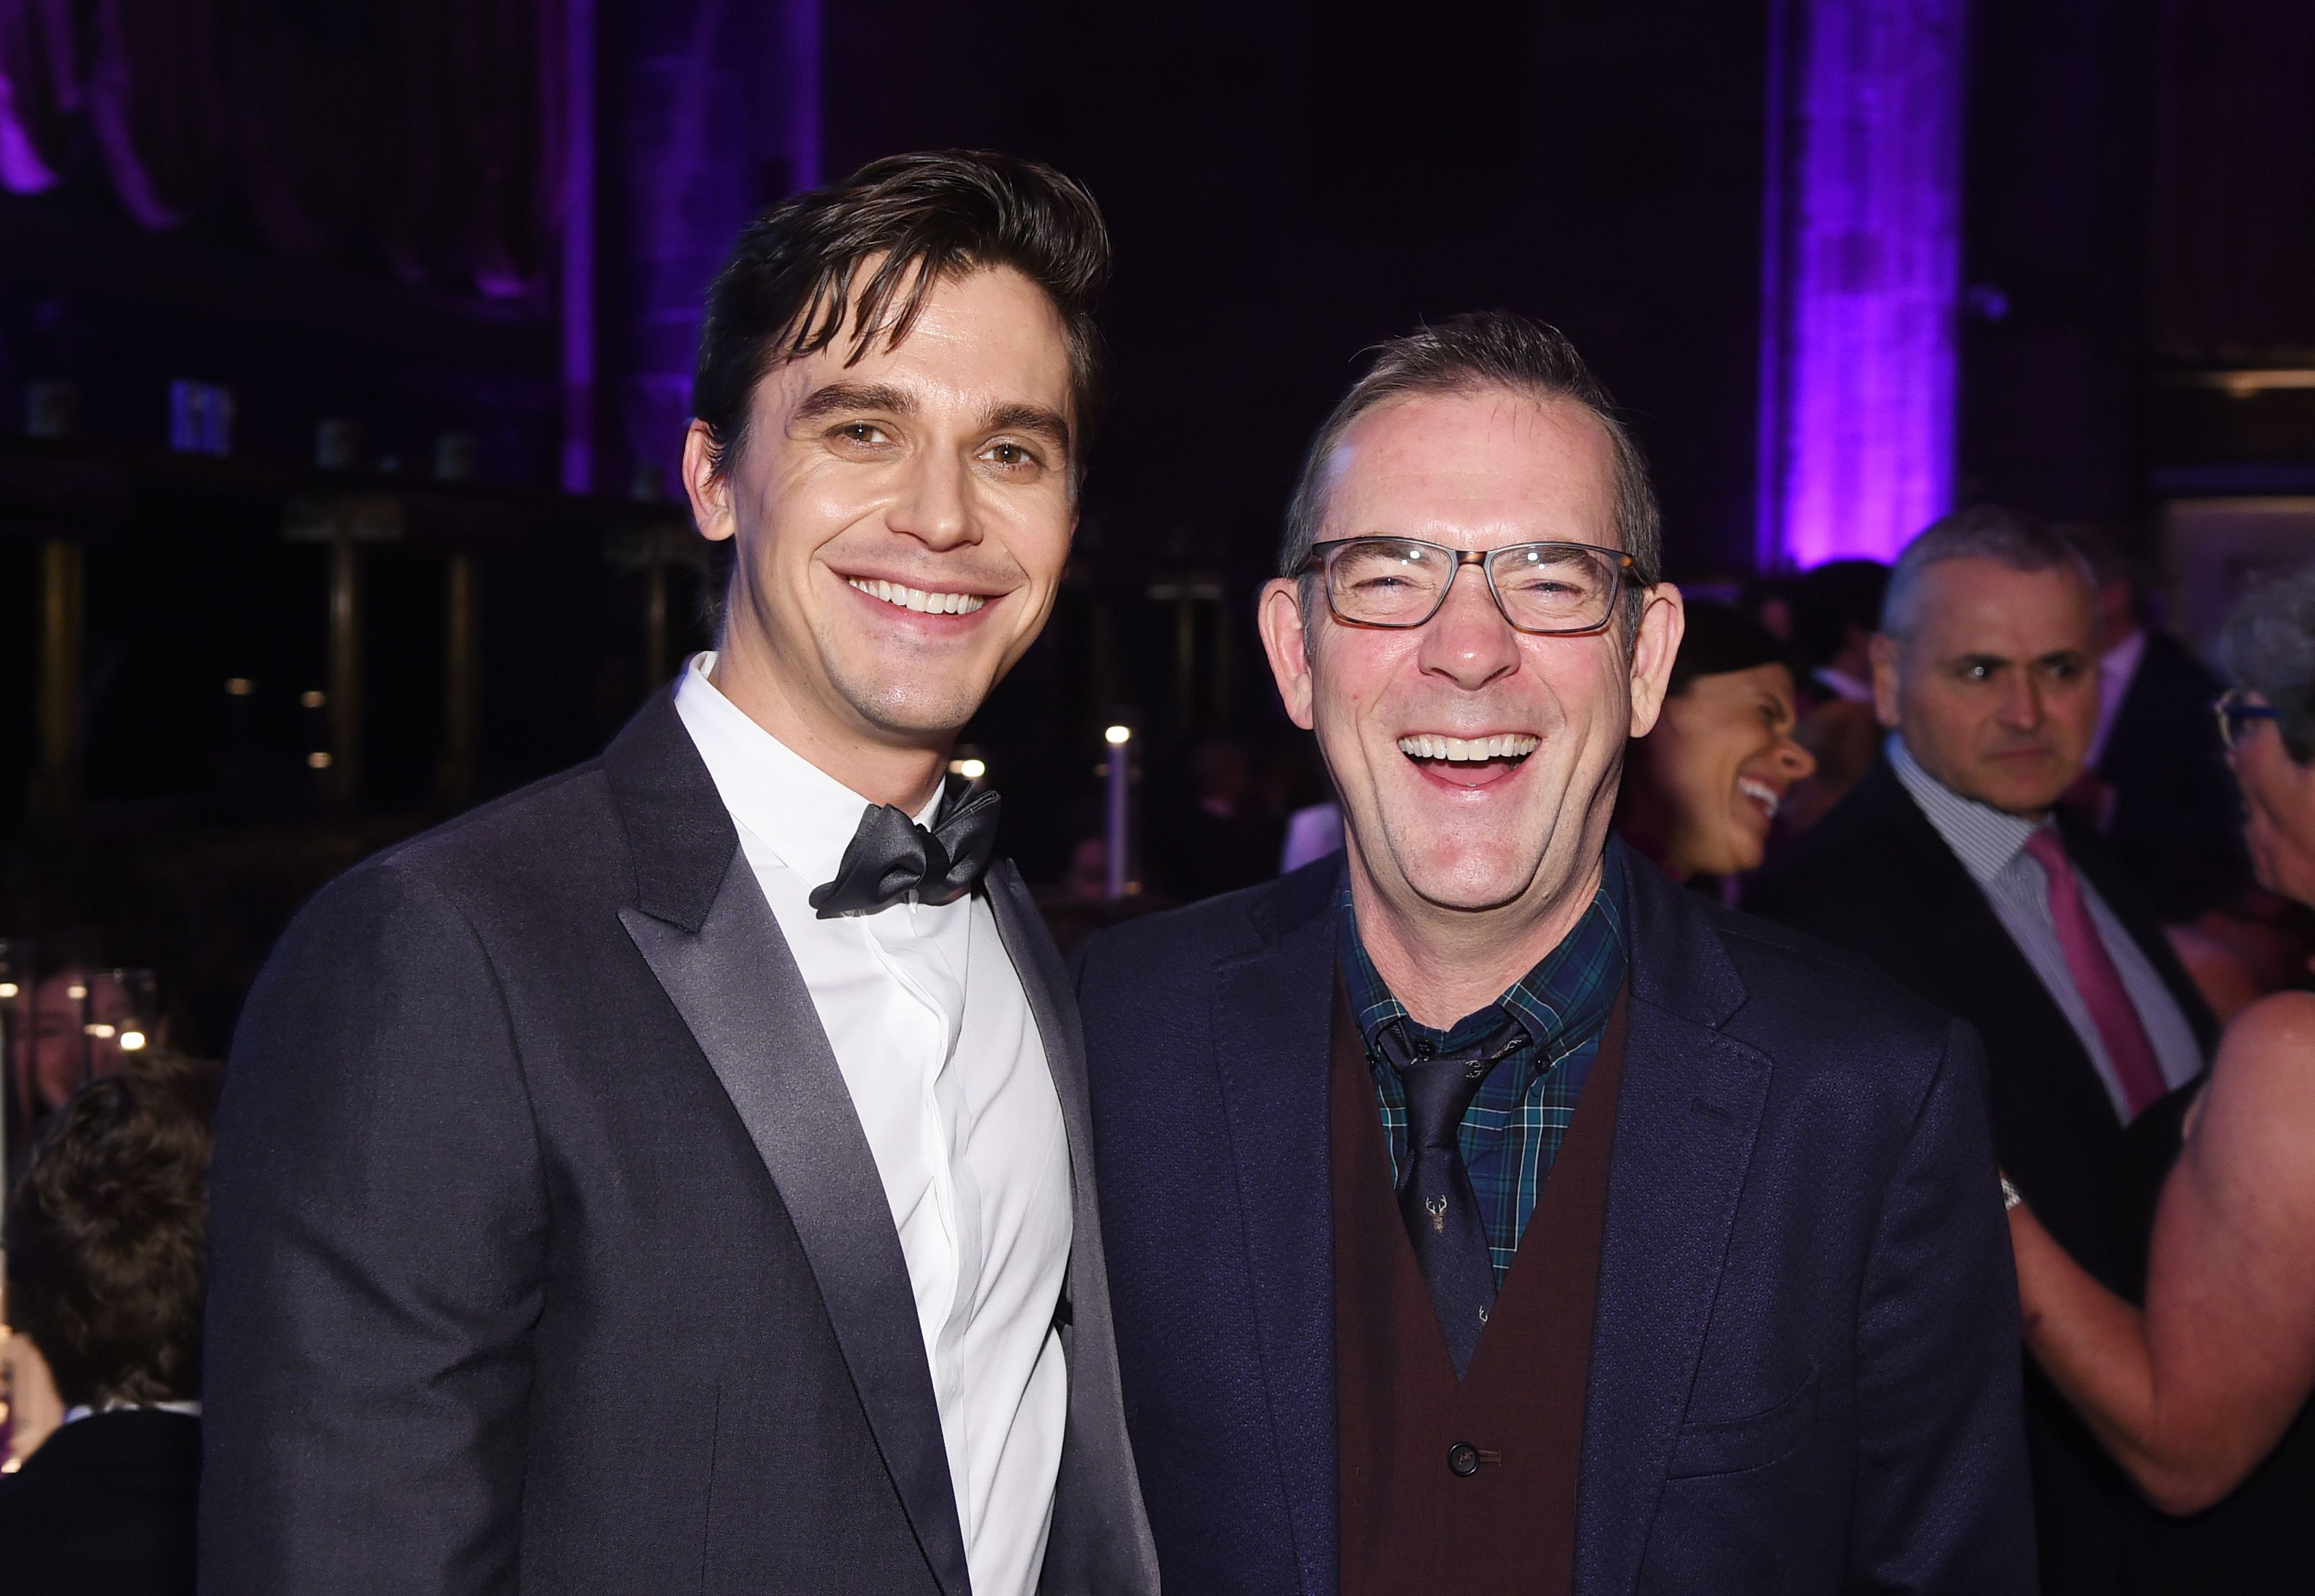 Antoni Porowski and Ted Allen attend City Harvest: The 2019 Gala / Getty Images